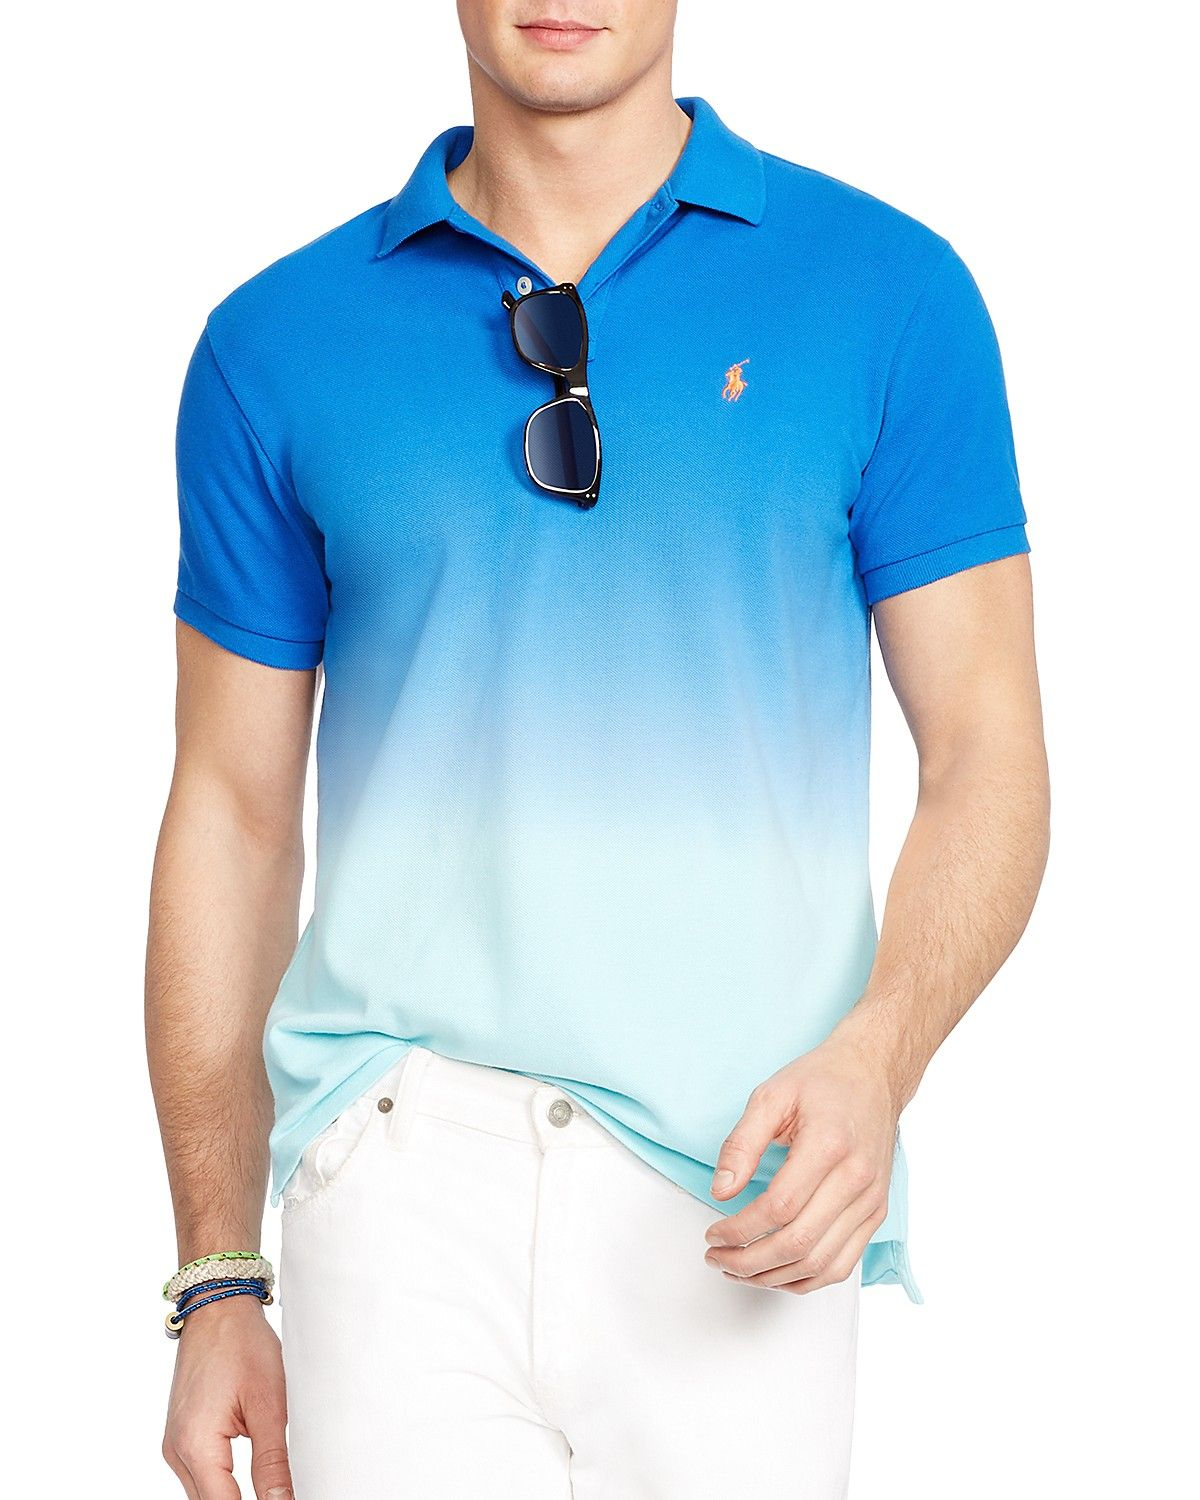 5b0c60d4 Polo Ralph Lauren Ombré Slim Fit Polo Shirt | clothes to buy in 2019 ...